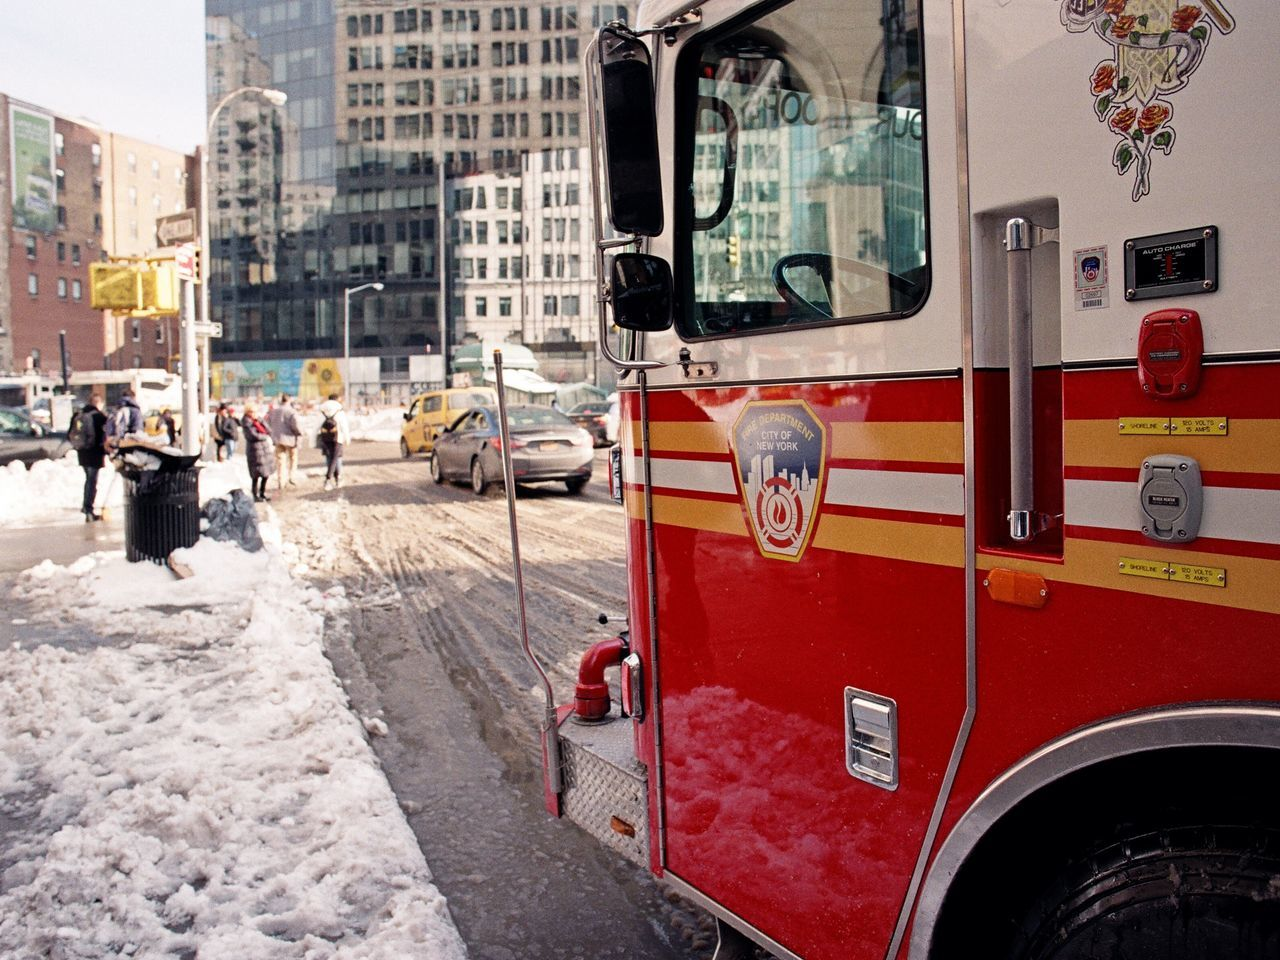 East Village, January 2016 City City Street Snow Firetruck Fdny Astorplace Eastvillage Manhattan Film Photography Ishootfilm Lomography Color Negative 100 35mm Film Elan7 Streetphoto_color Streetphotography Street Photography